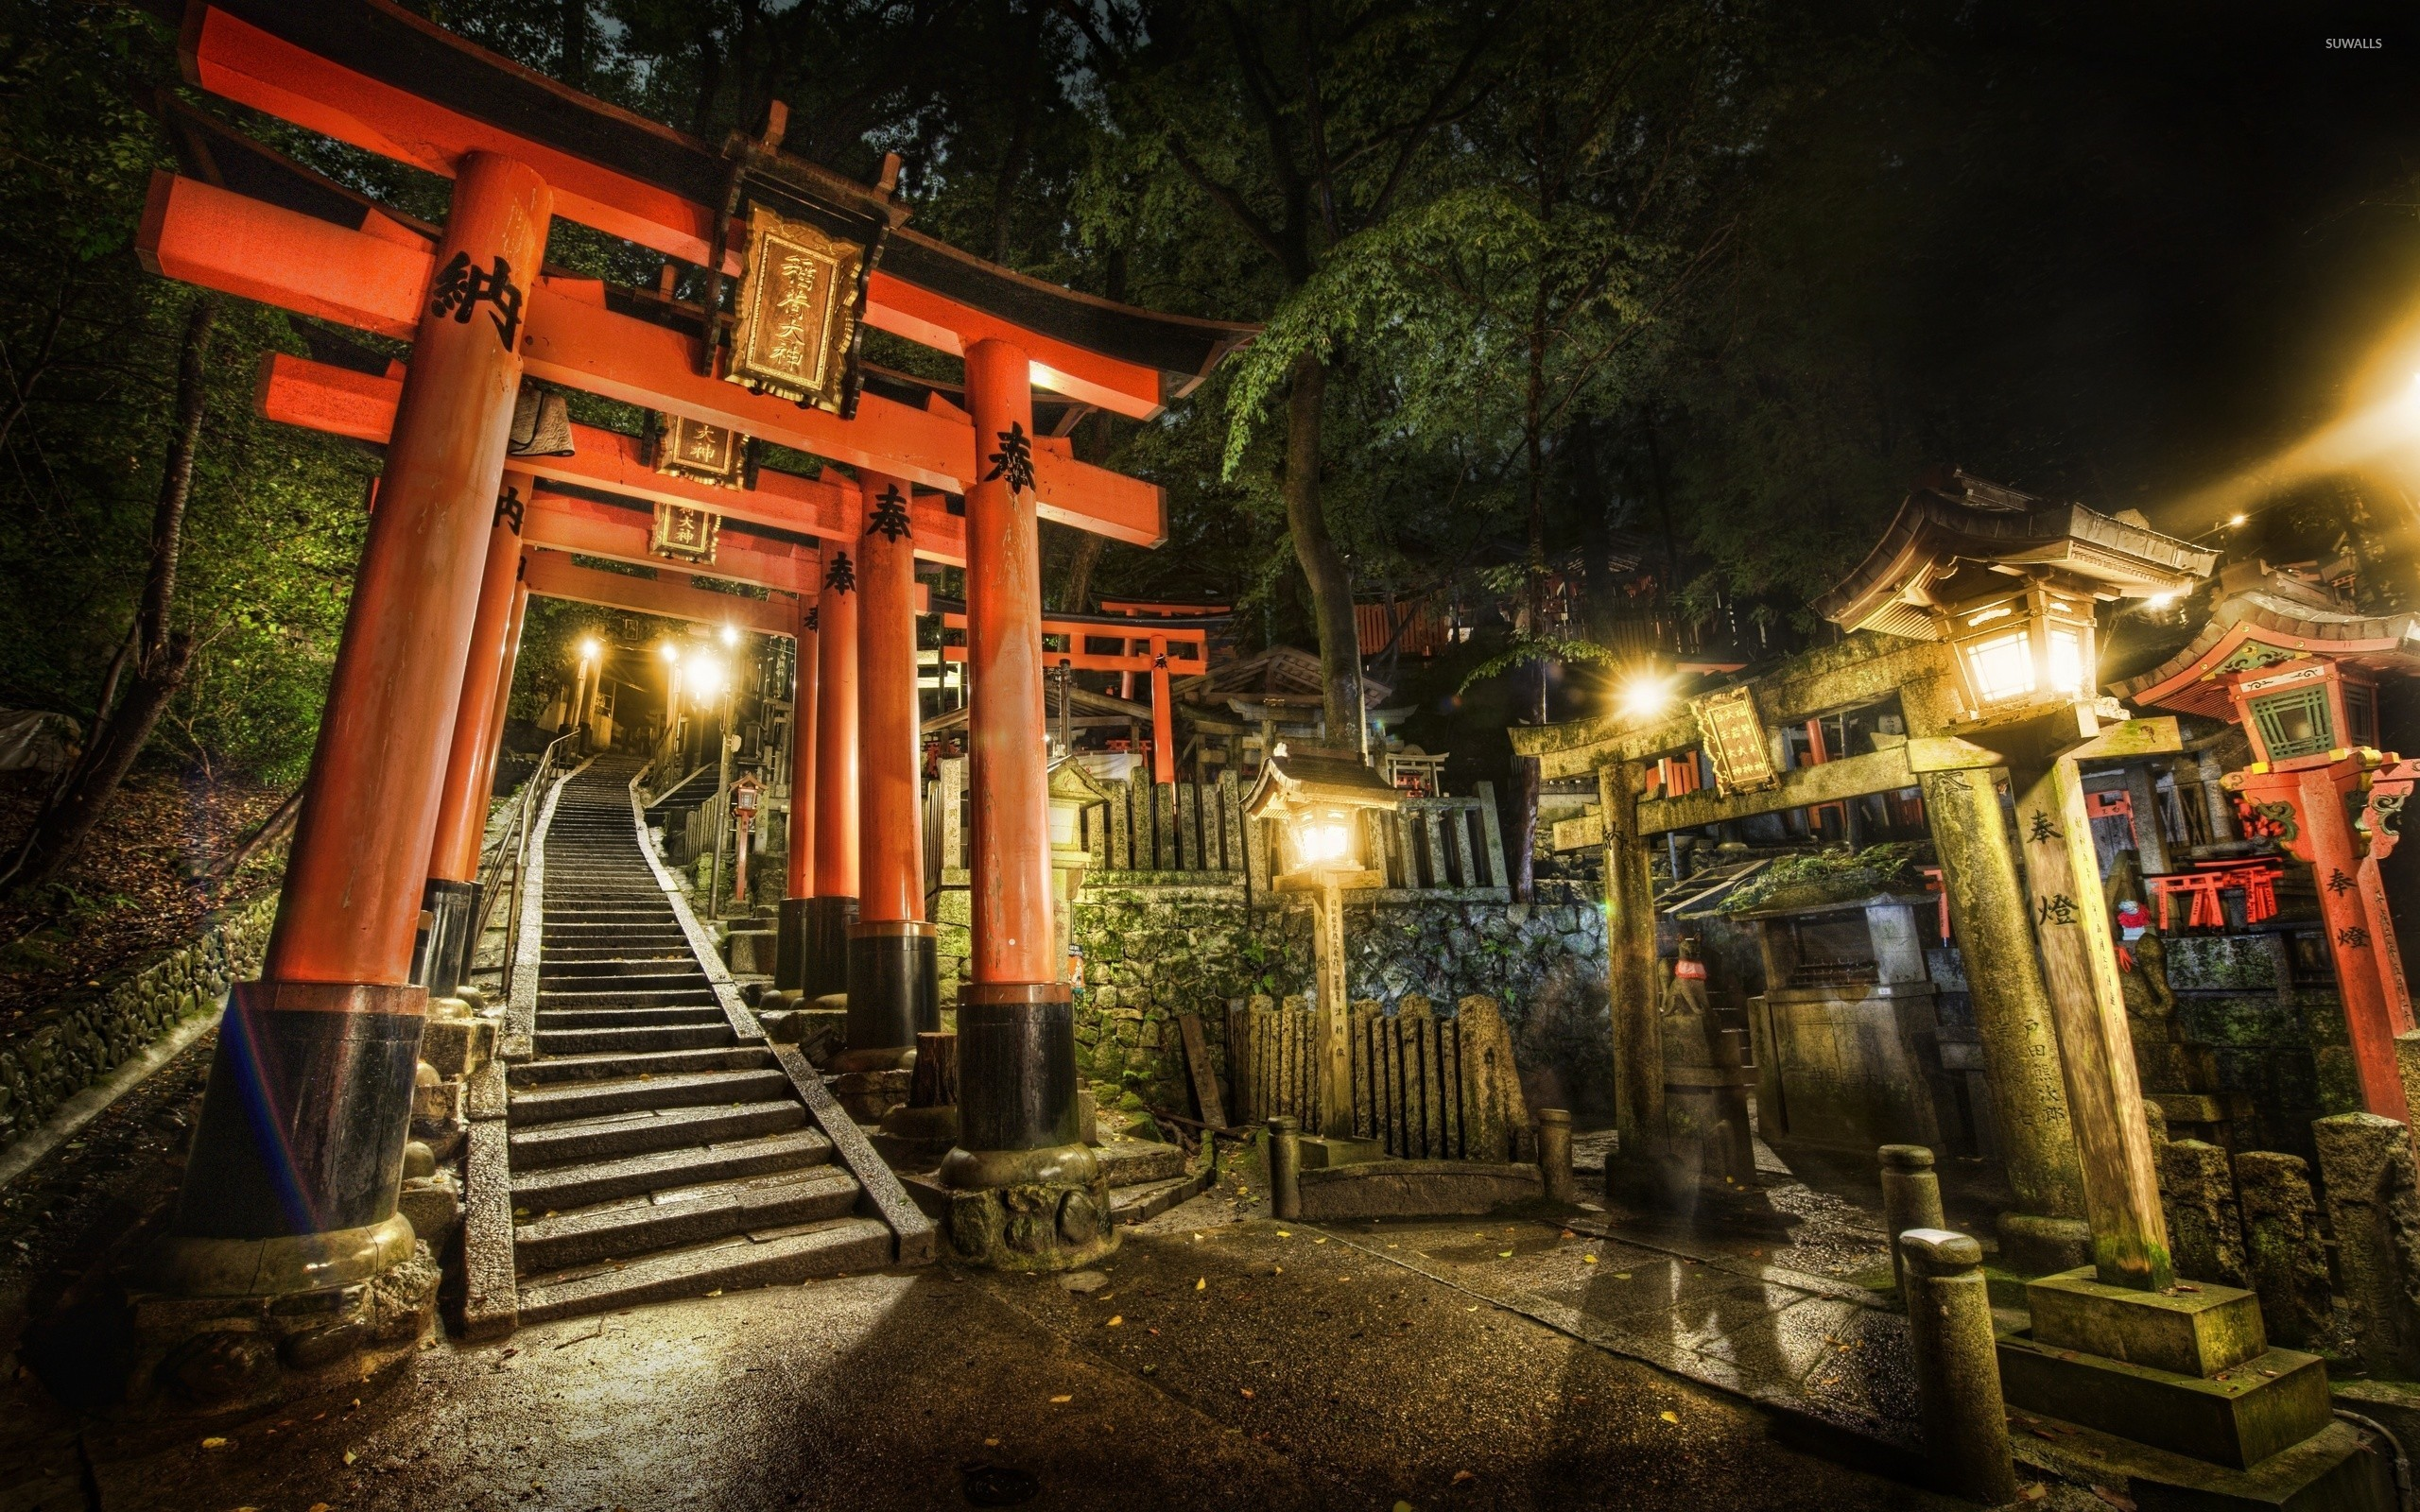 Fantastic Wallpaper Night Japanese Garden - torii-in-a-japanese-garden-44114-2560x1600  Pic-49361.jpg